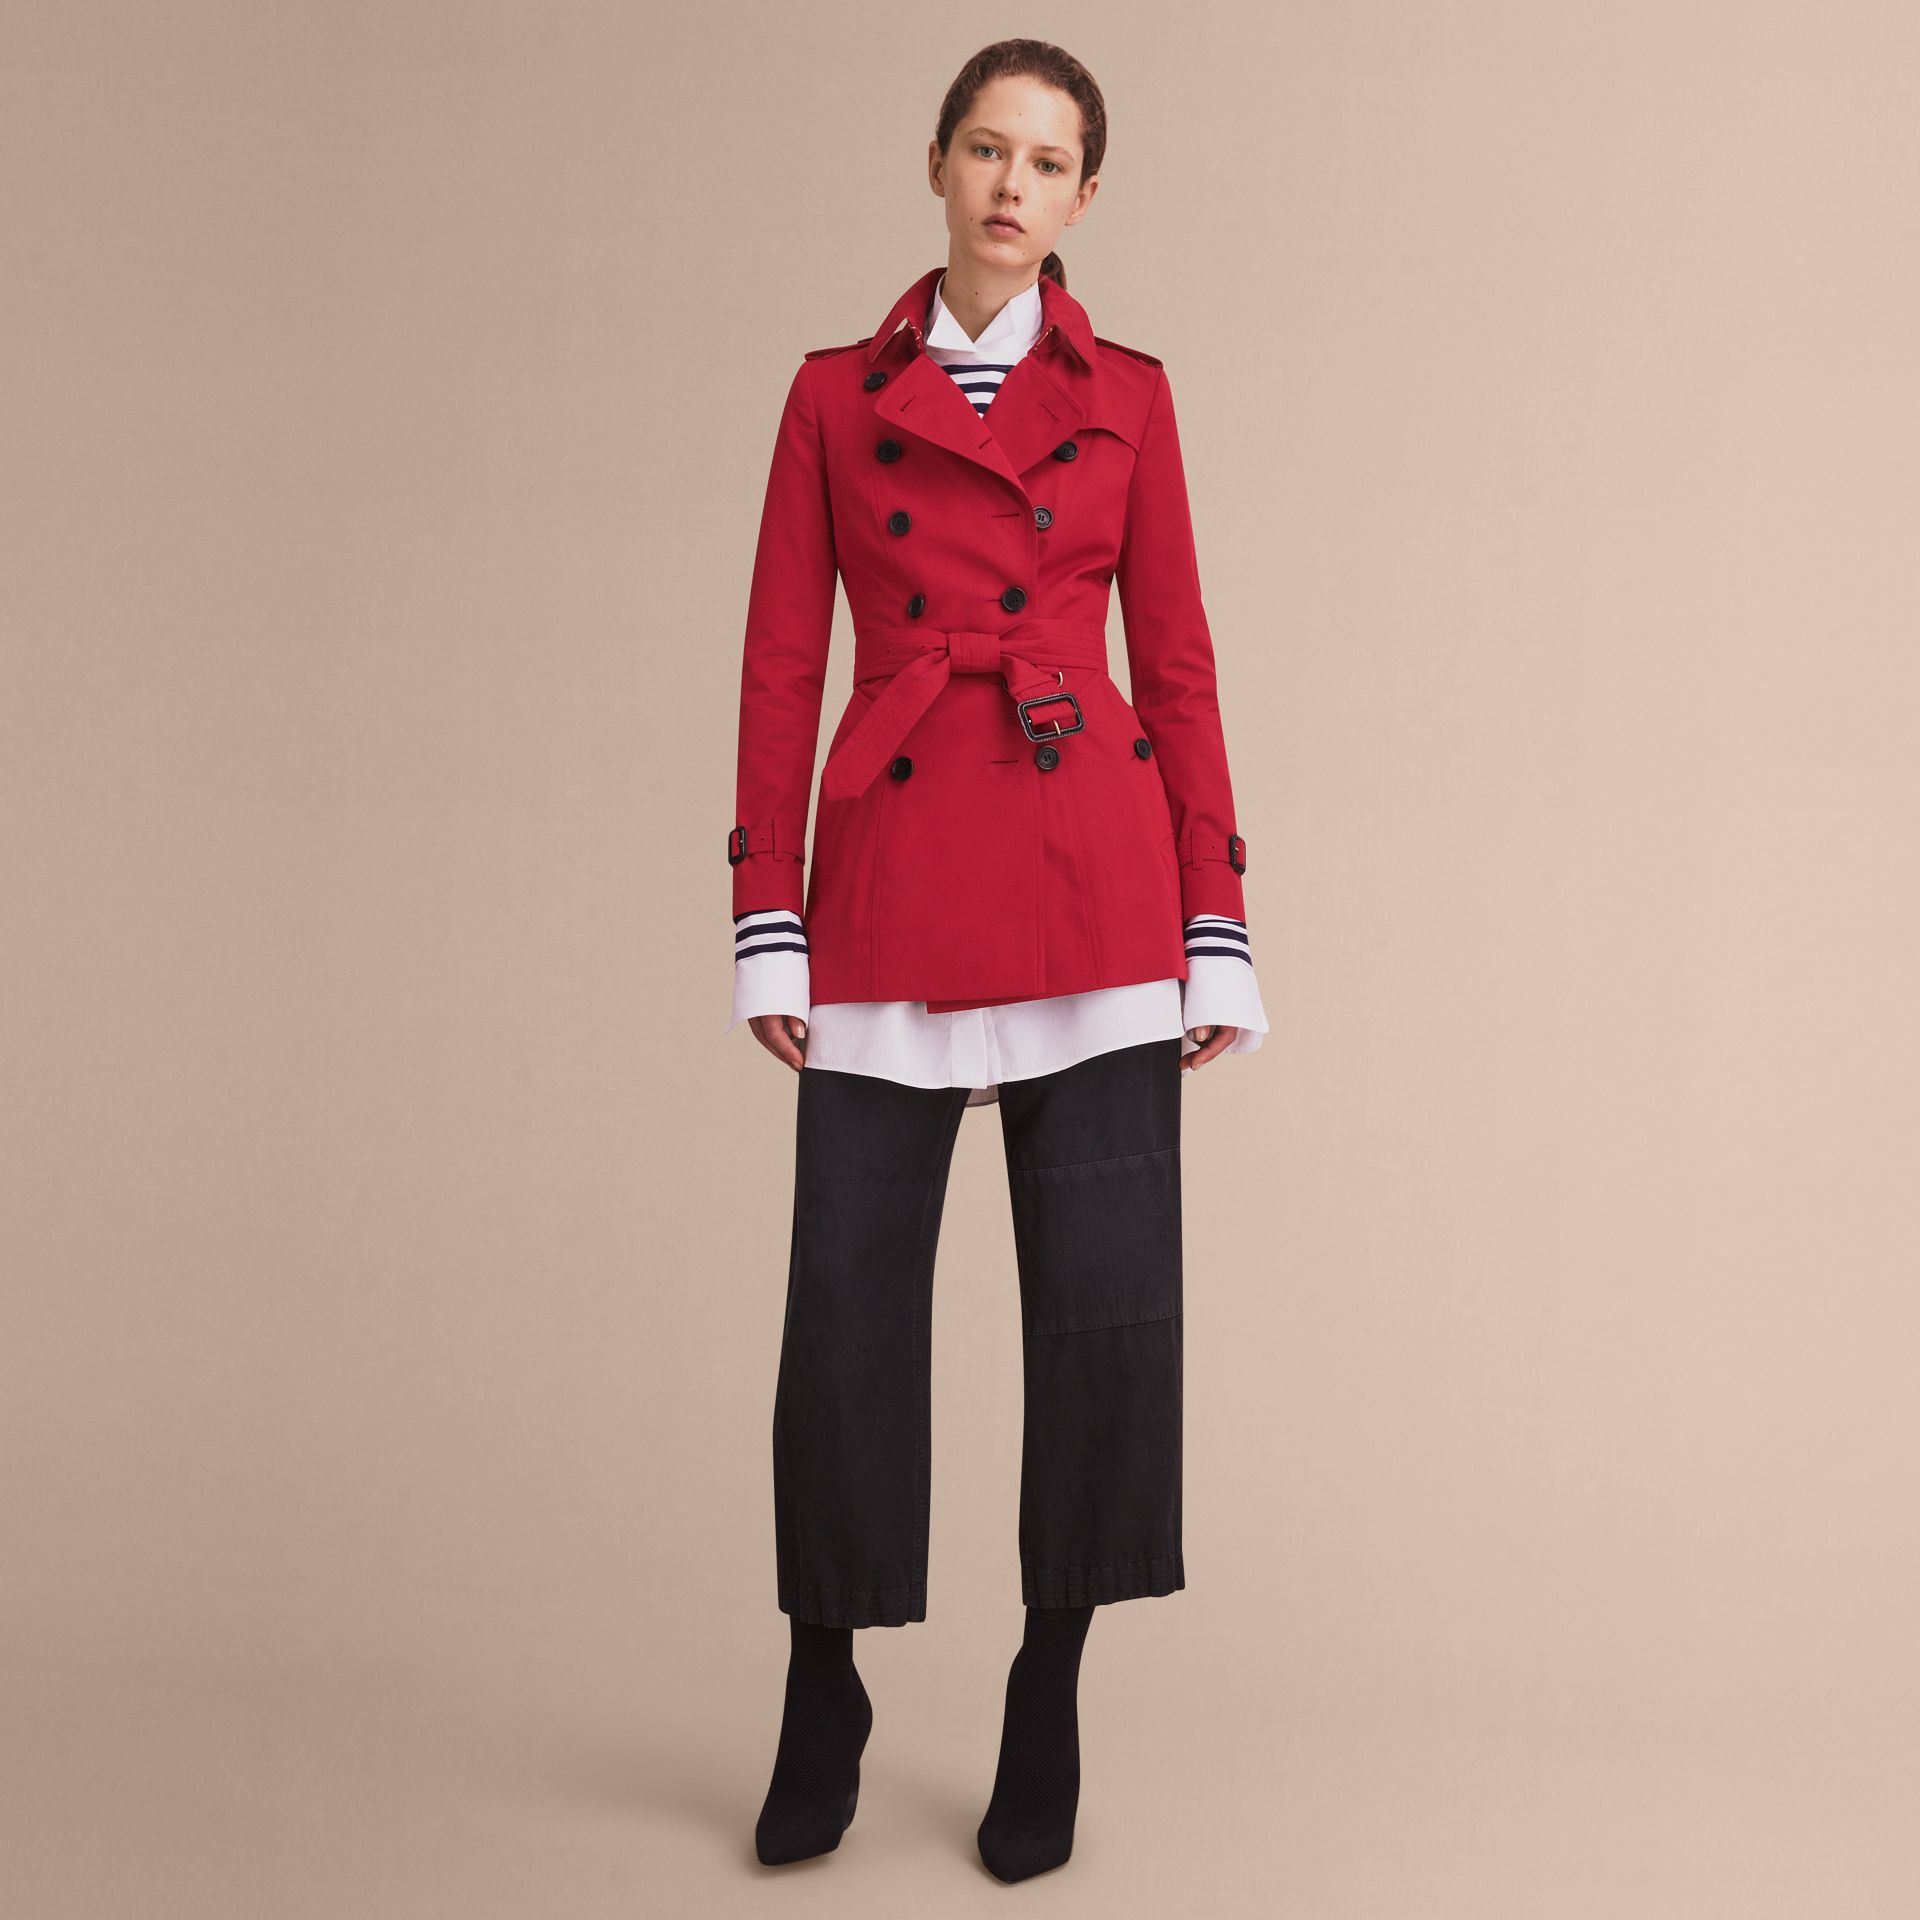 The Chelsea – Short Heritage Trench Coat in Parade Red - Women | Burberry - gallery image 1